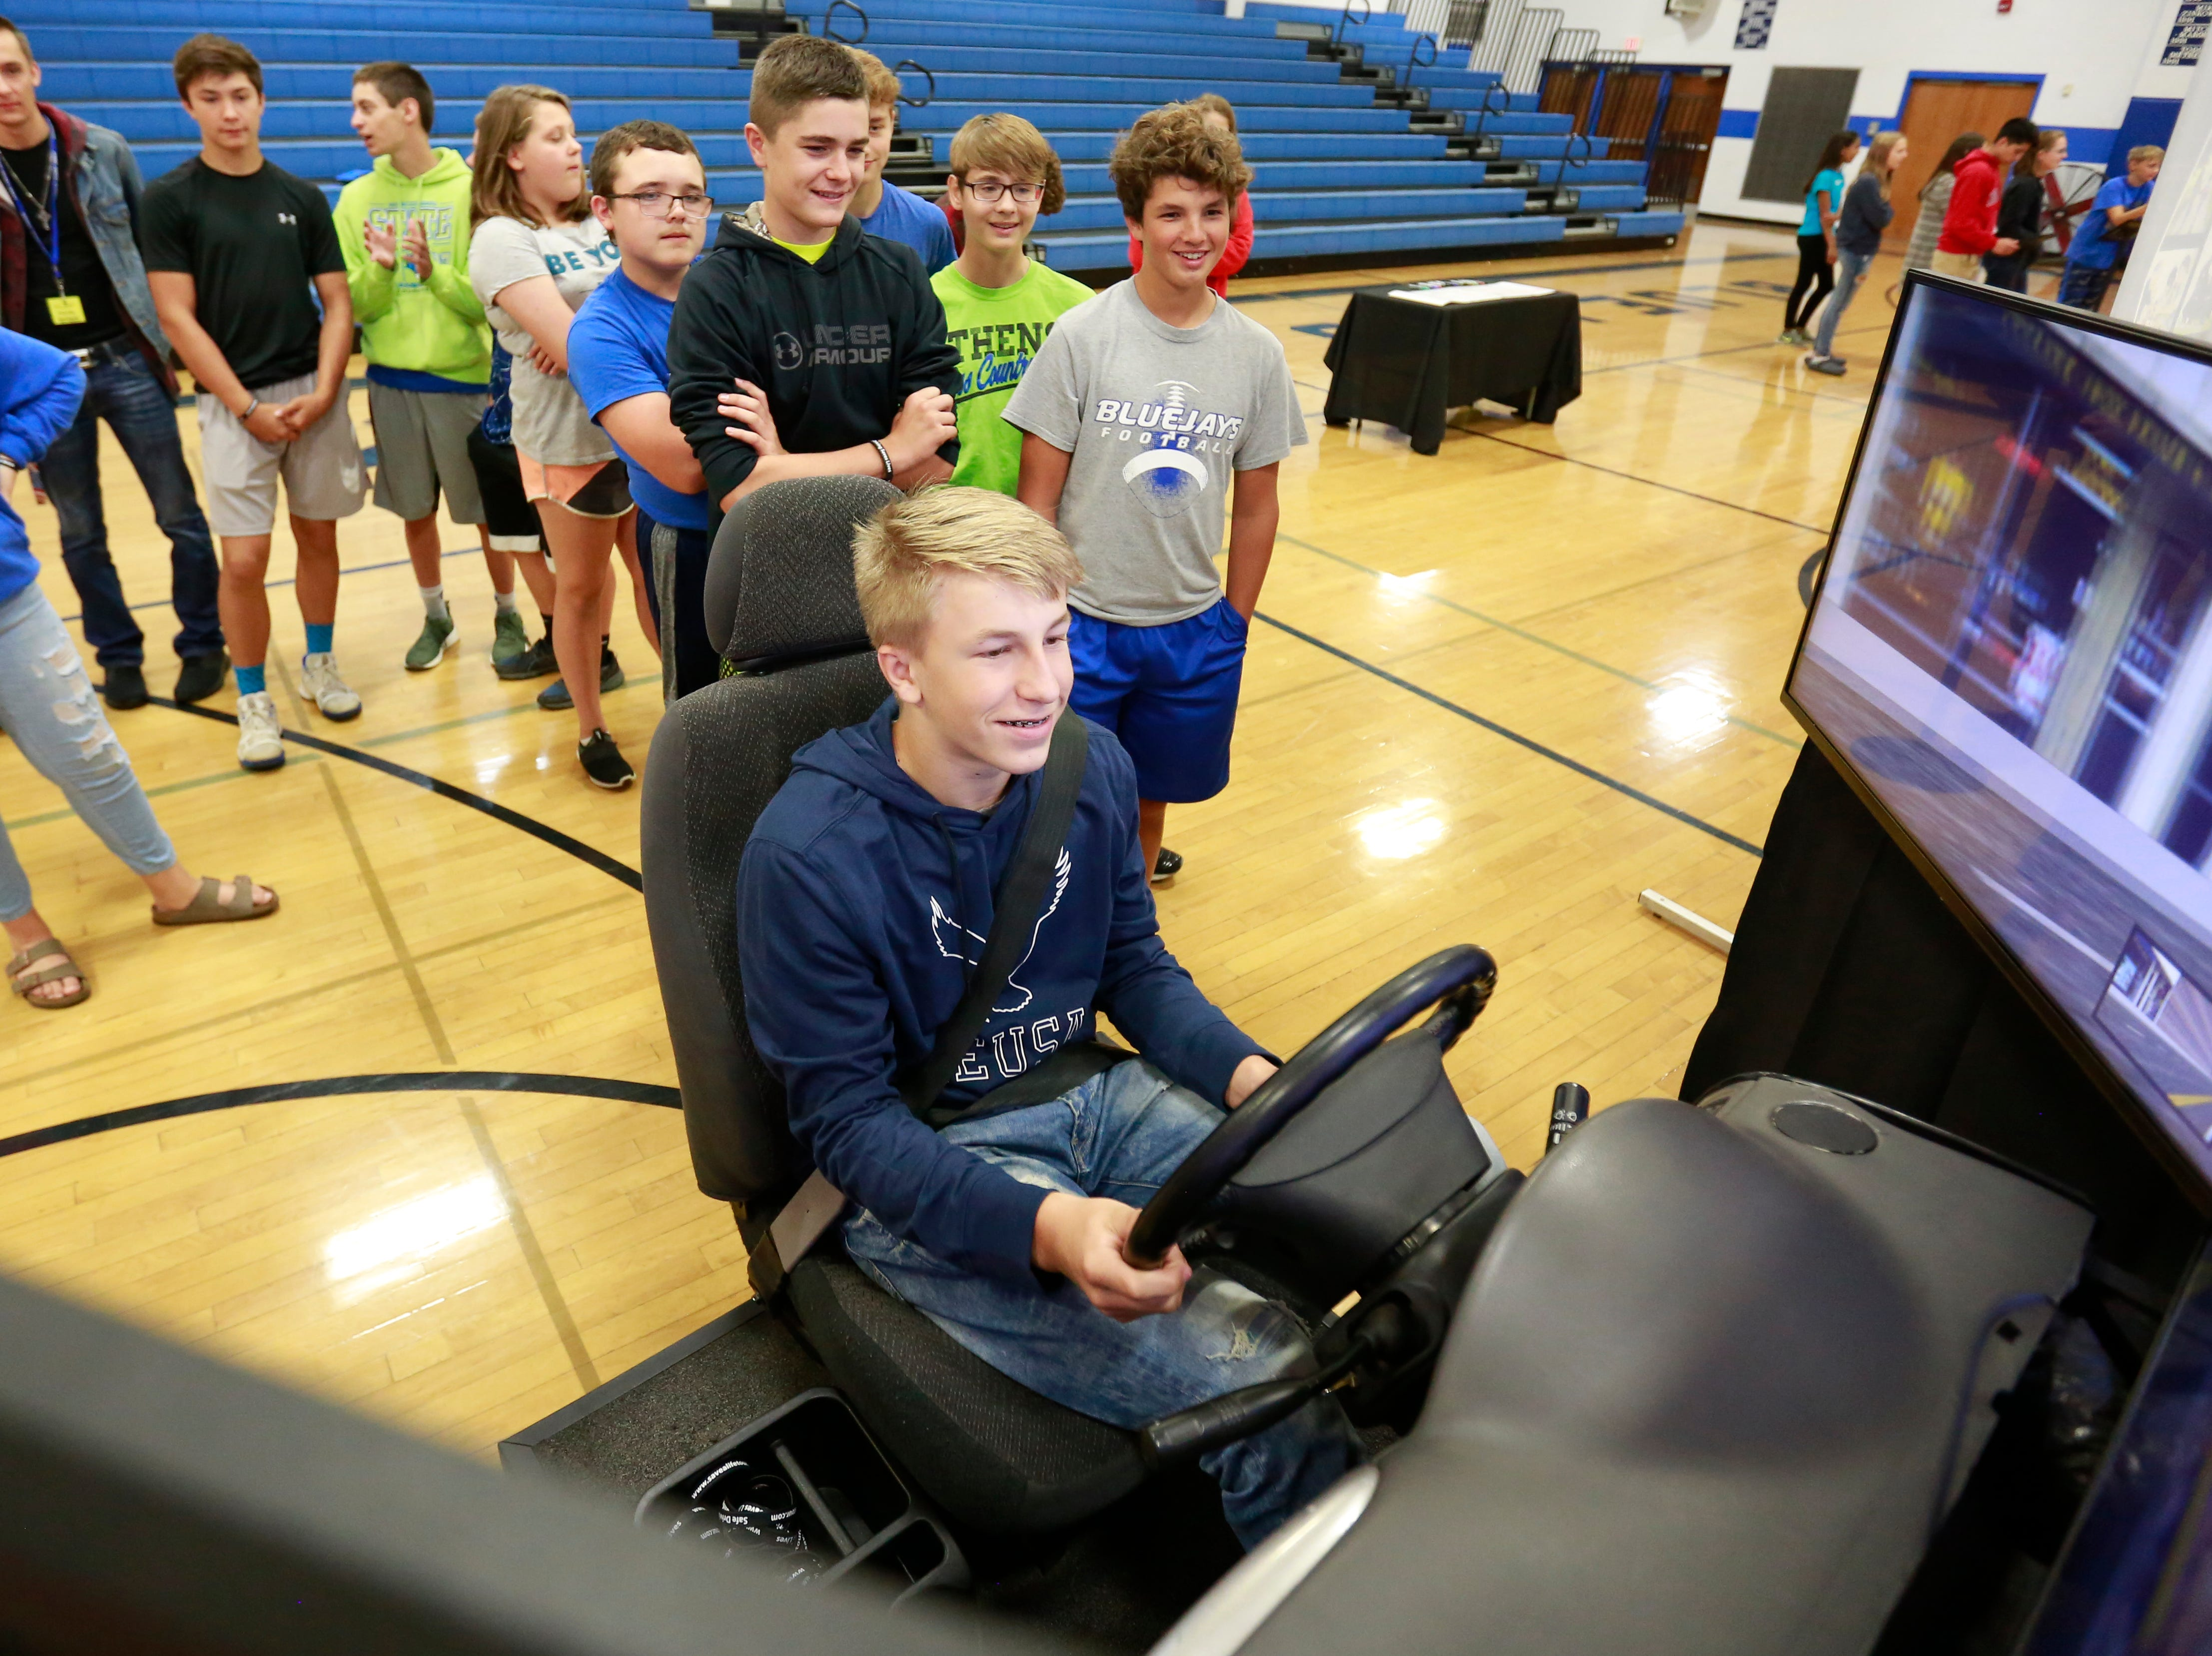 Cooper Diedrich, 15, drives a simulator while his classmates look on during the Save A Life Tour Wednesday, Sept. 19, 2018, at Athens High School in Athens, Wis. T'xer Zhon Kha/USA TODAY NETWORK-Wisconsin